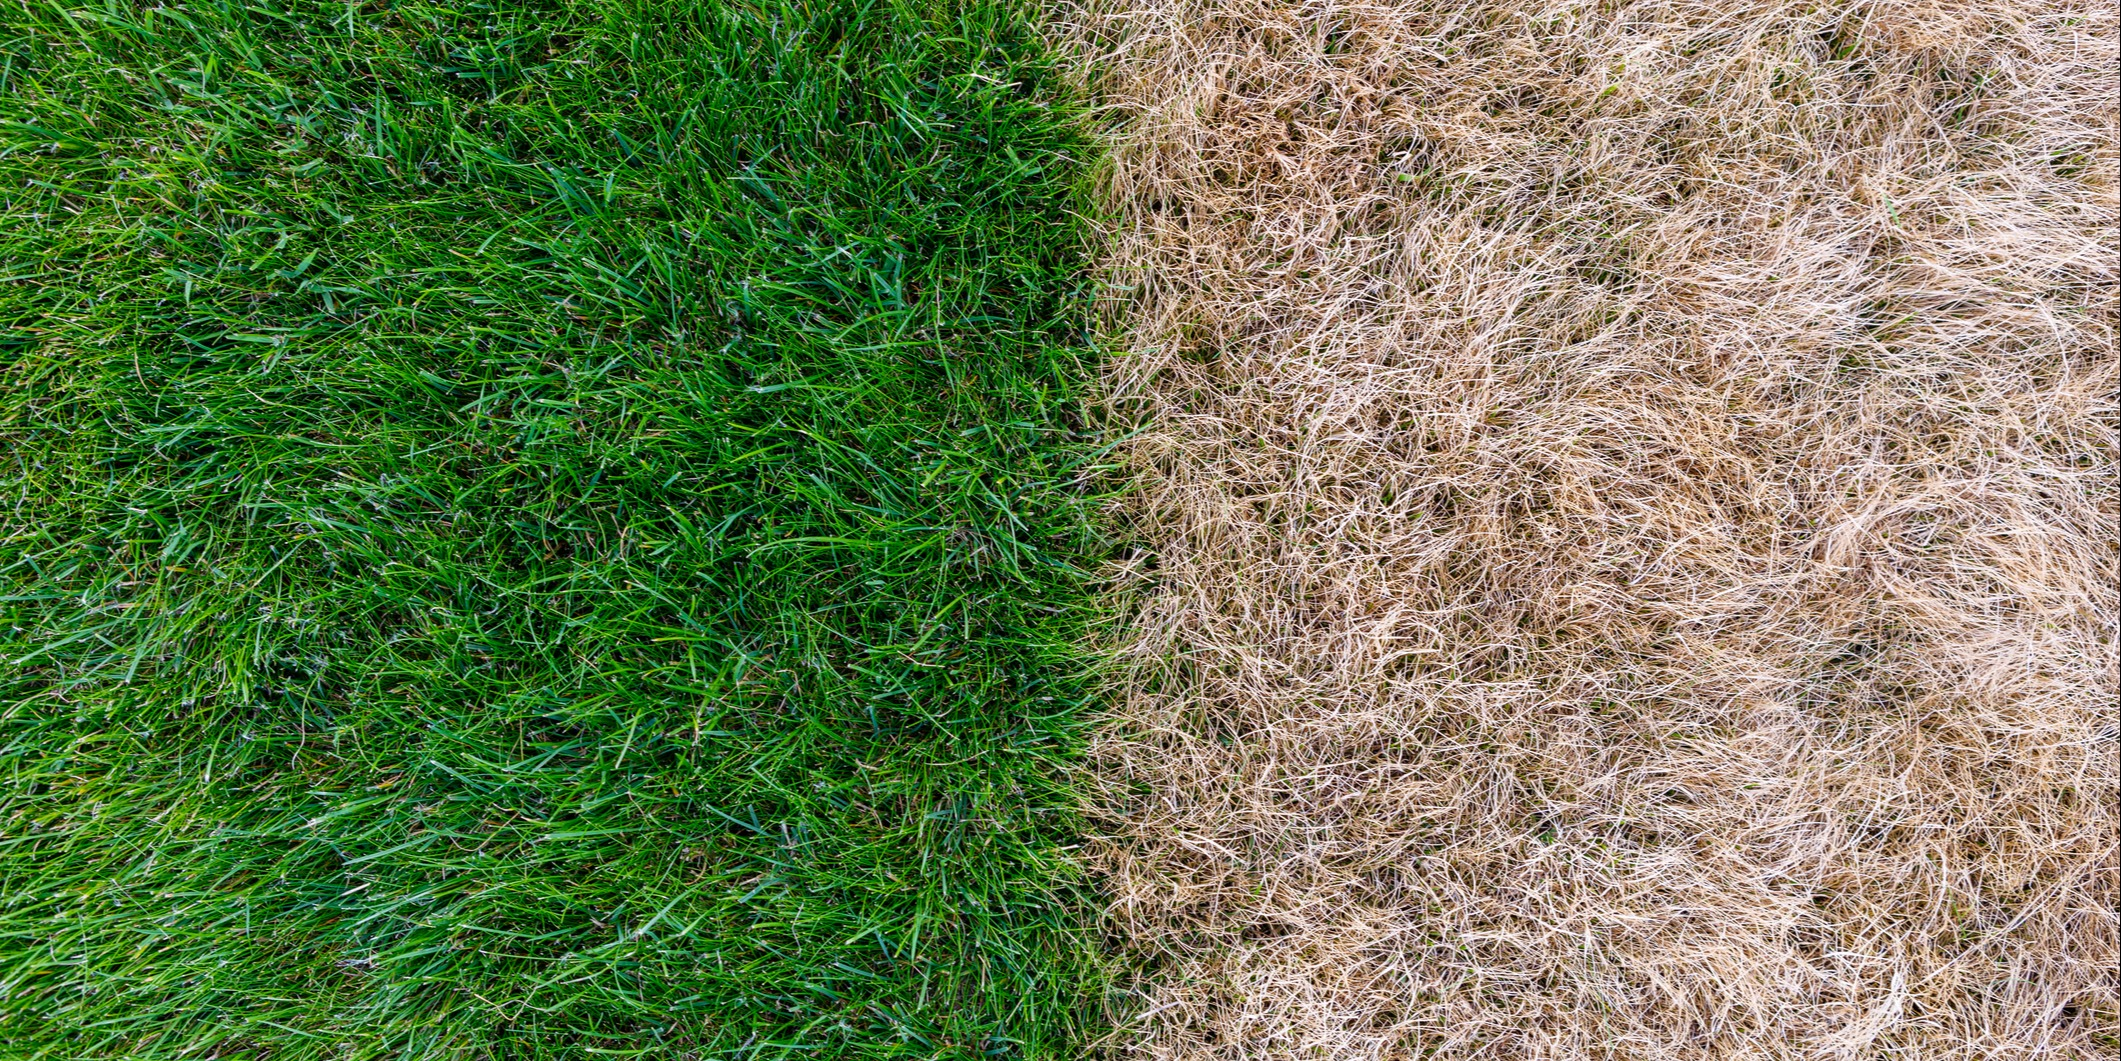 Each turfgrass species performs differently under drought conditions.